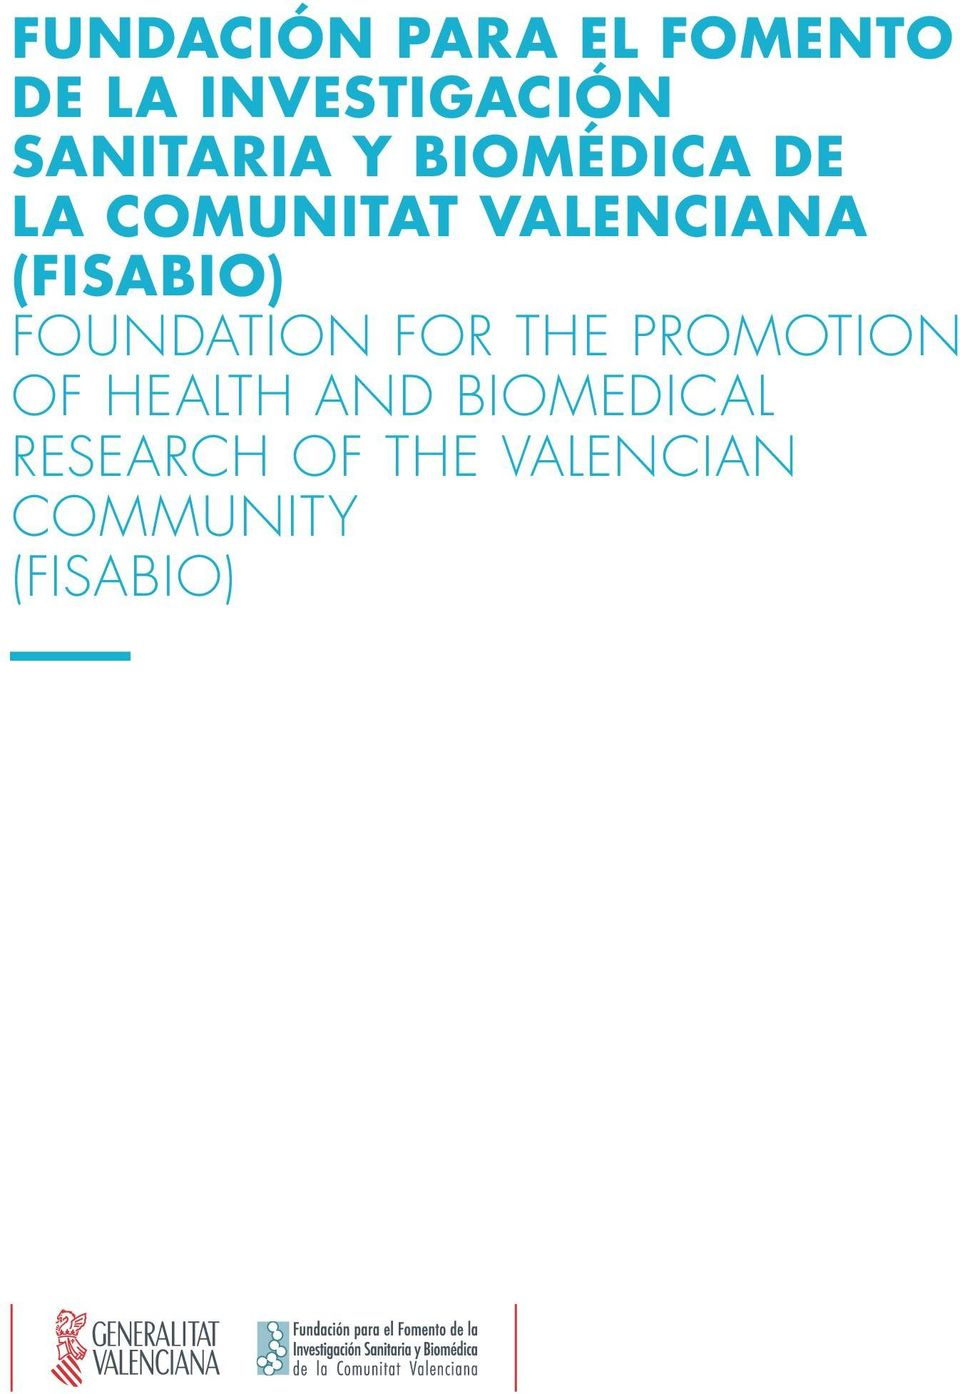 (FISABIO) Foundation for the Promotion of Health